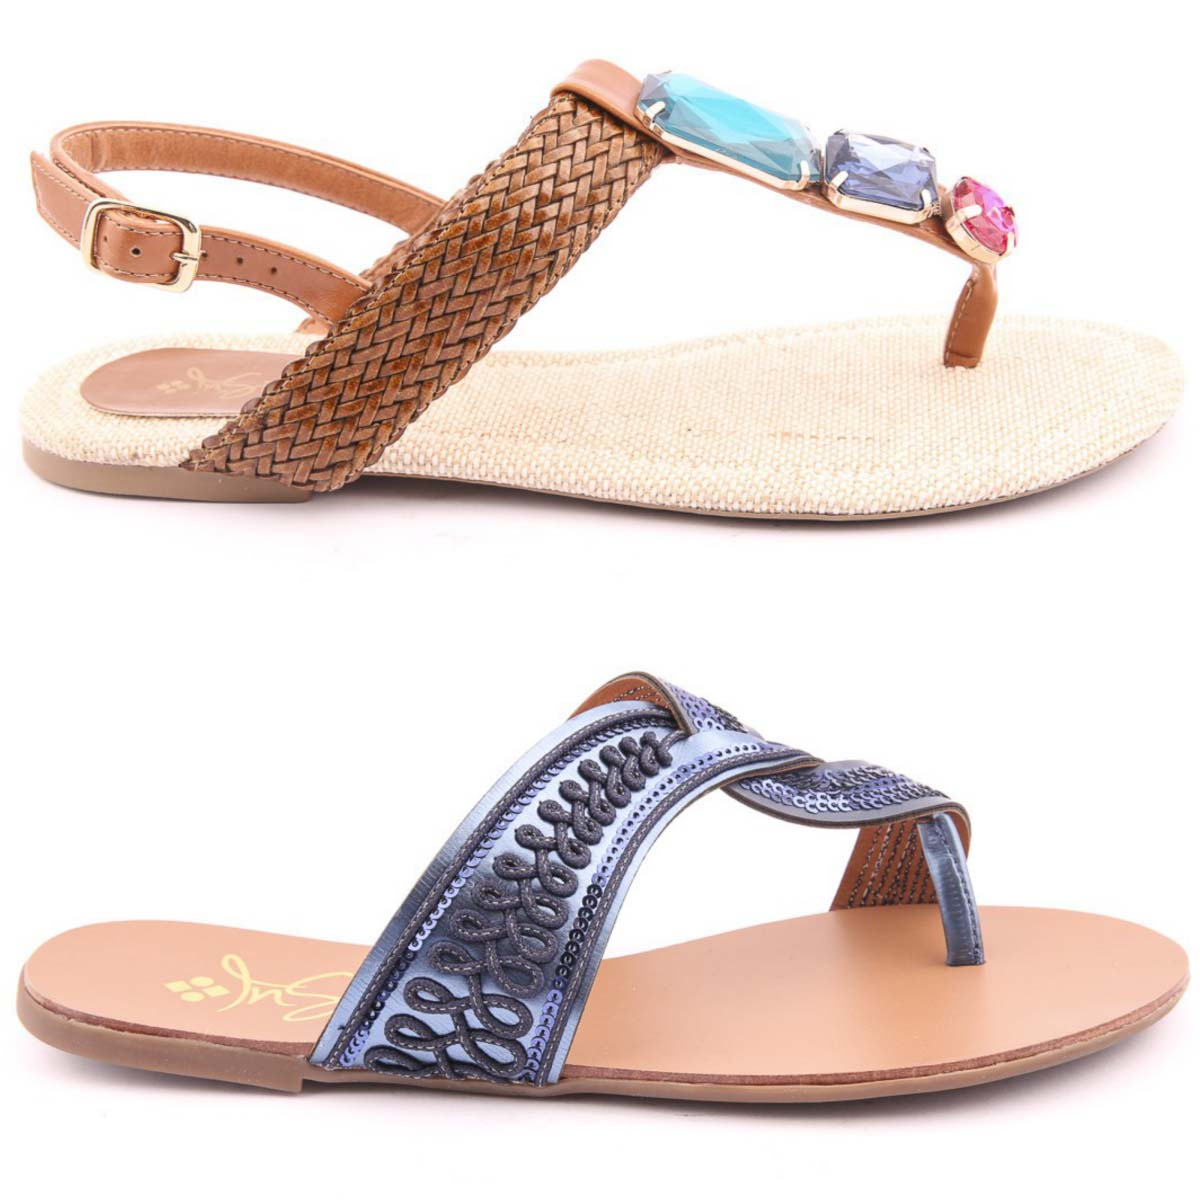 Luxury Bata Summer Fancy Amp Casual Shoes Collection For Women 20162017 19